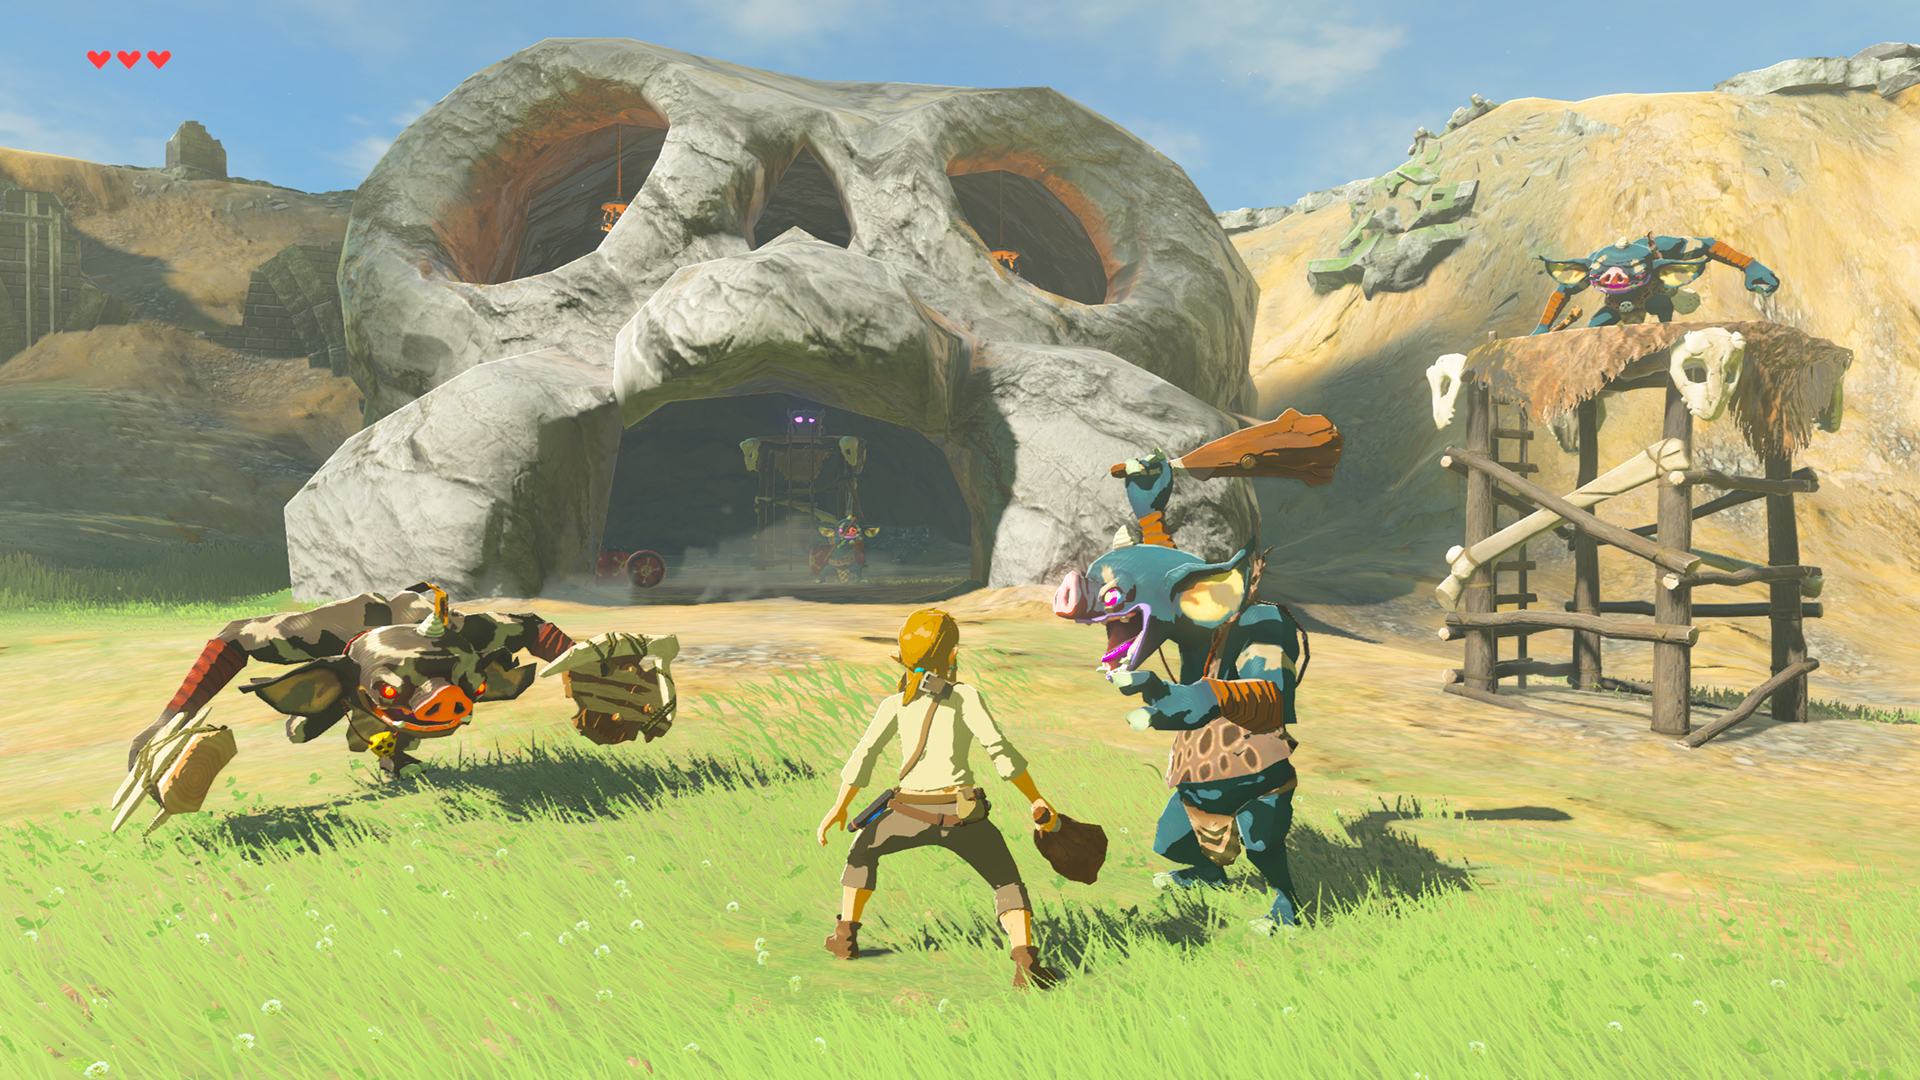 A Bokoblin attacks Link in a screenshot from The Legend of Zelda: Breath of the Wild